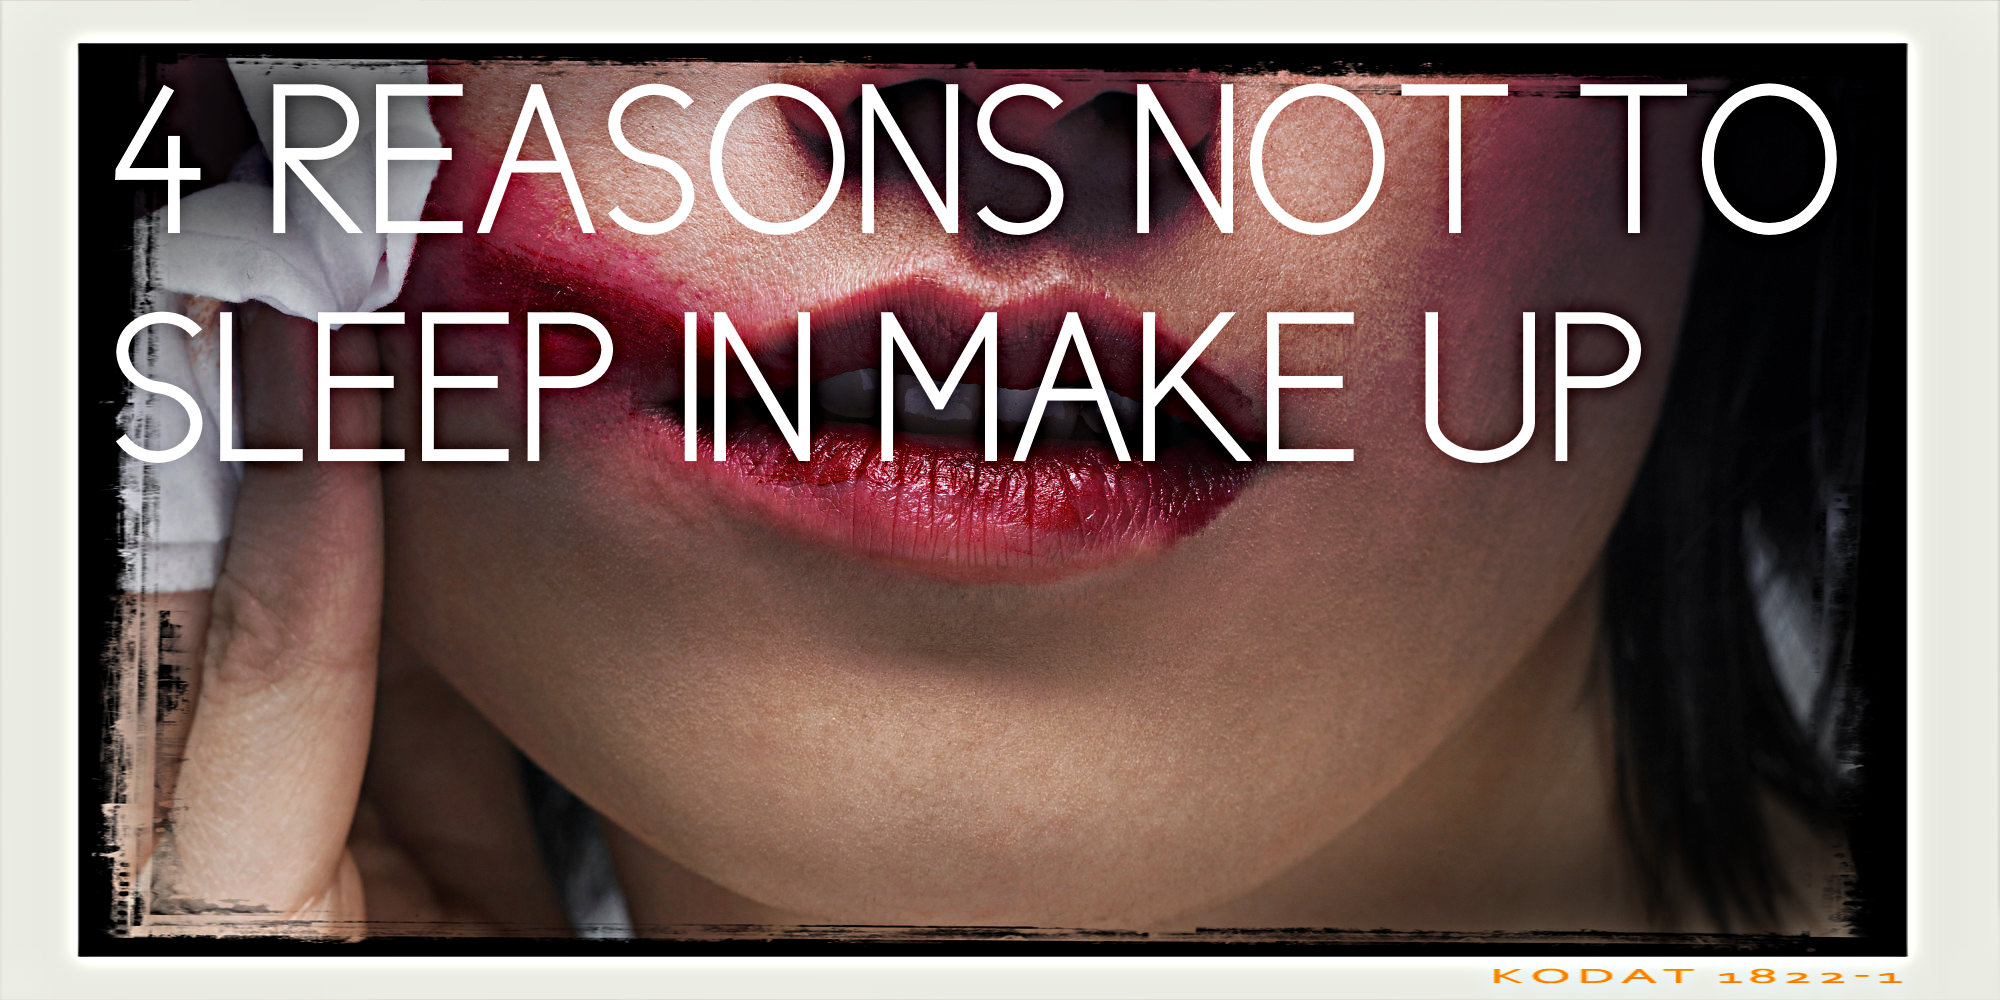 Top 4 Reasons Not to Sleep in your Make Up.